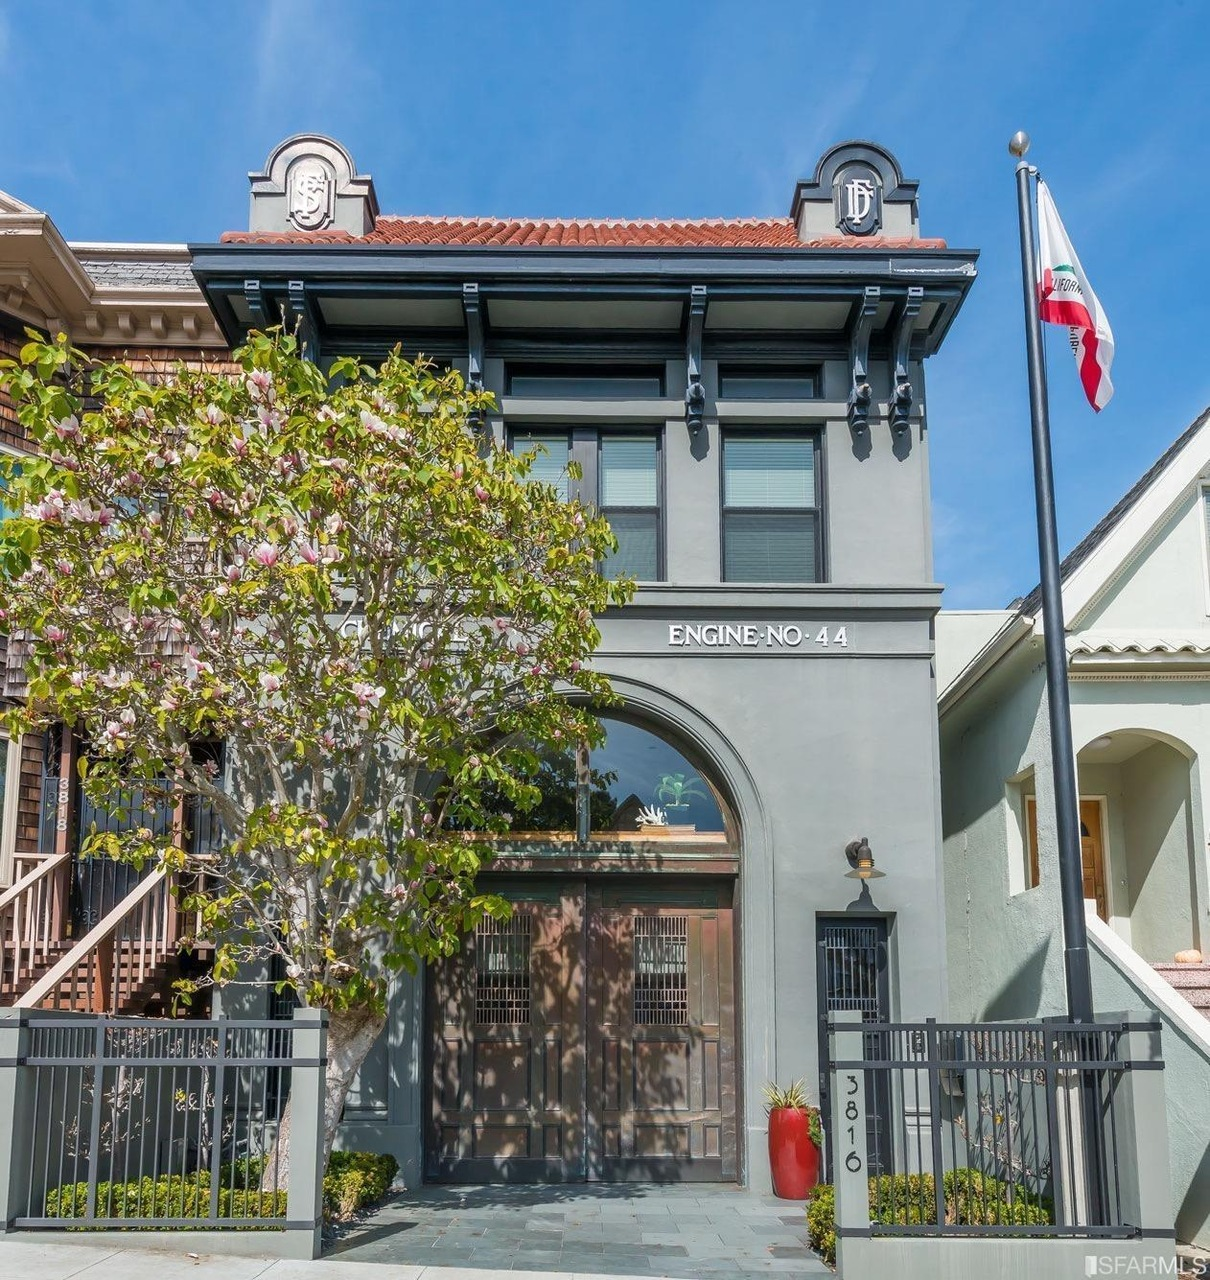 San Francisco Rentals By Owner: Noe Valley Firehouse Returns To Market For $5.7 Million